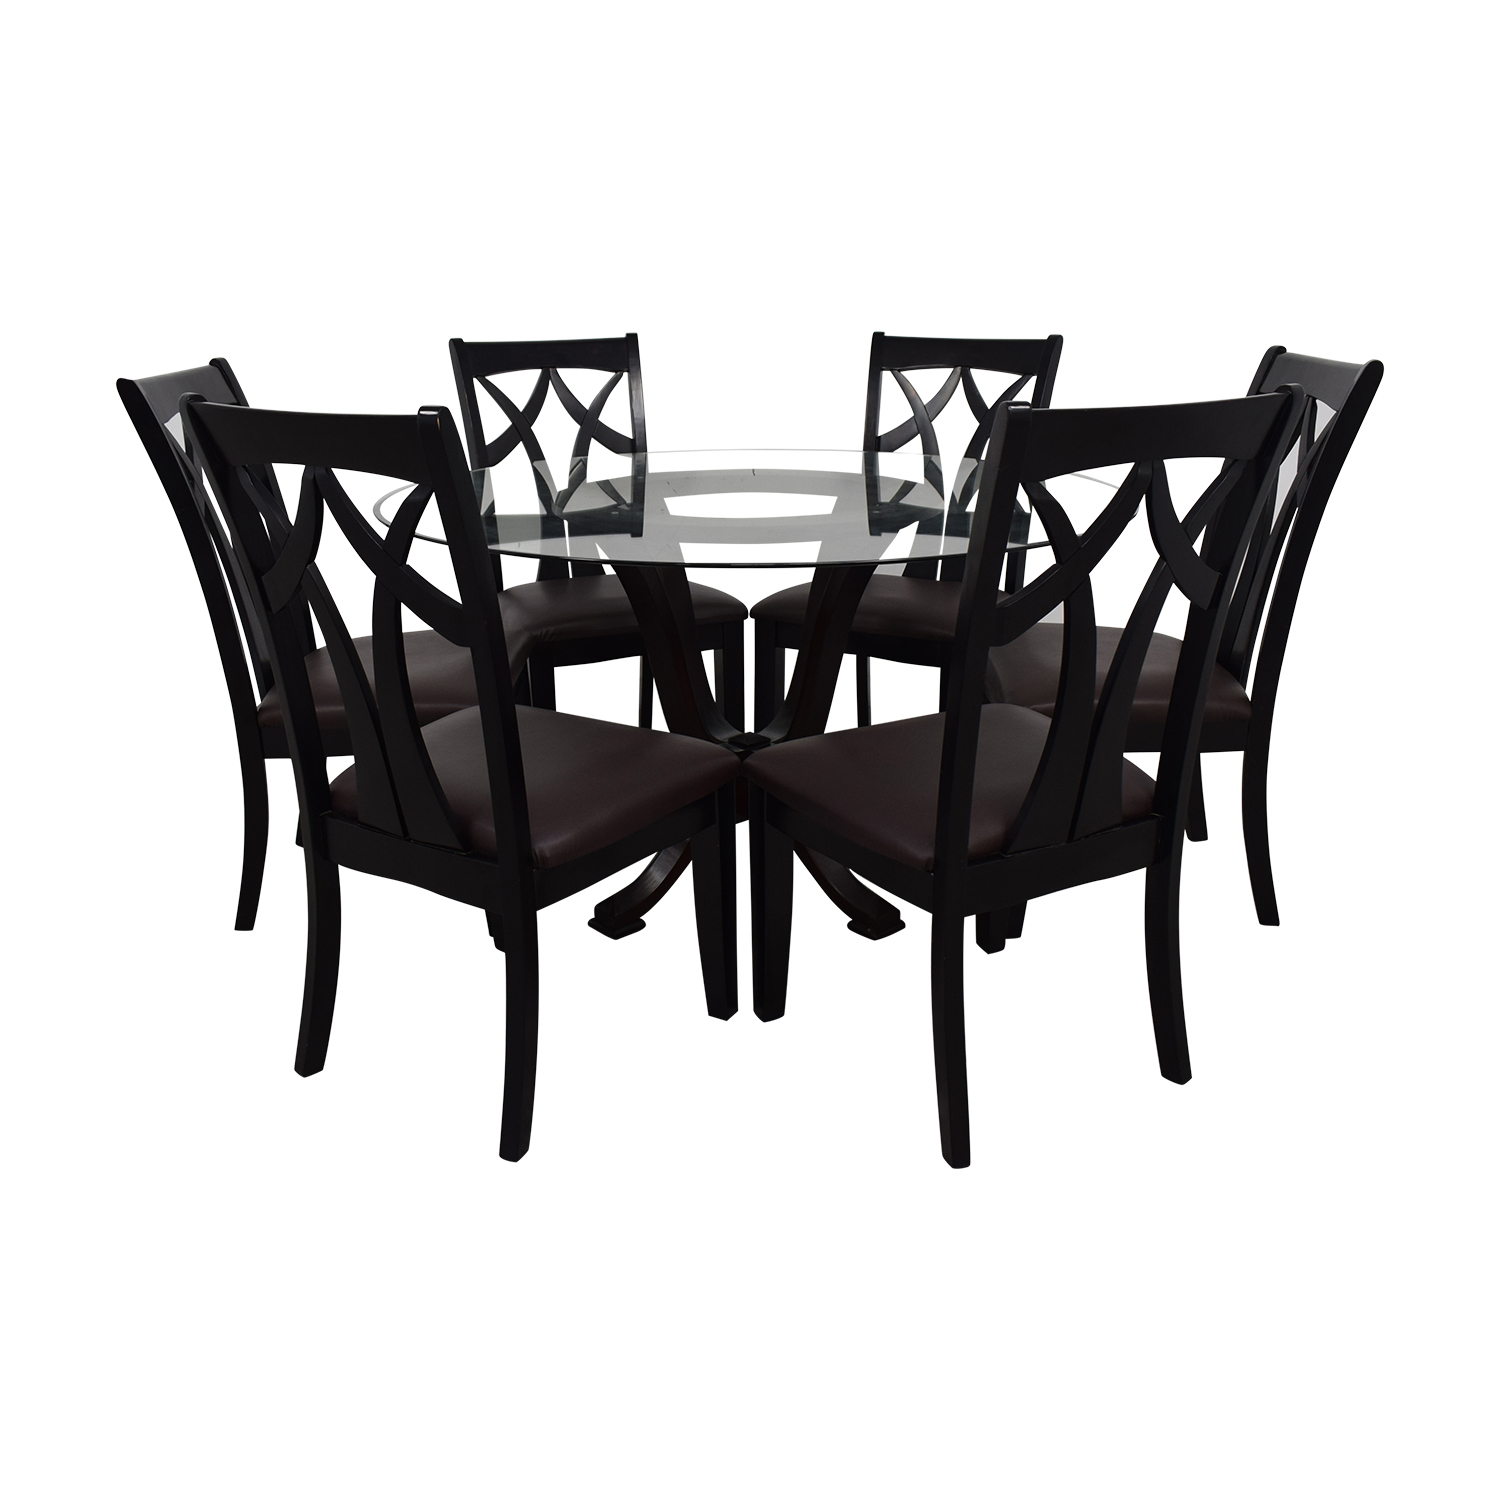 Raymour & Flanigan Raymour & Flanigan Contemporary Style Round Table With Six chairs dimensions